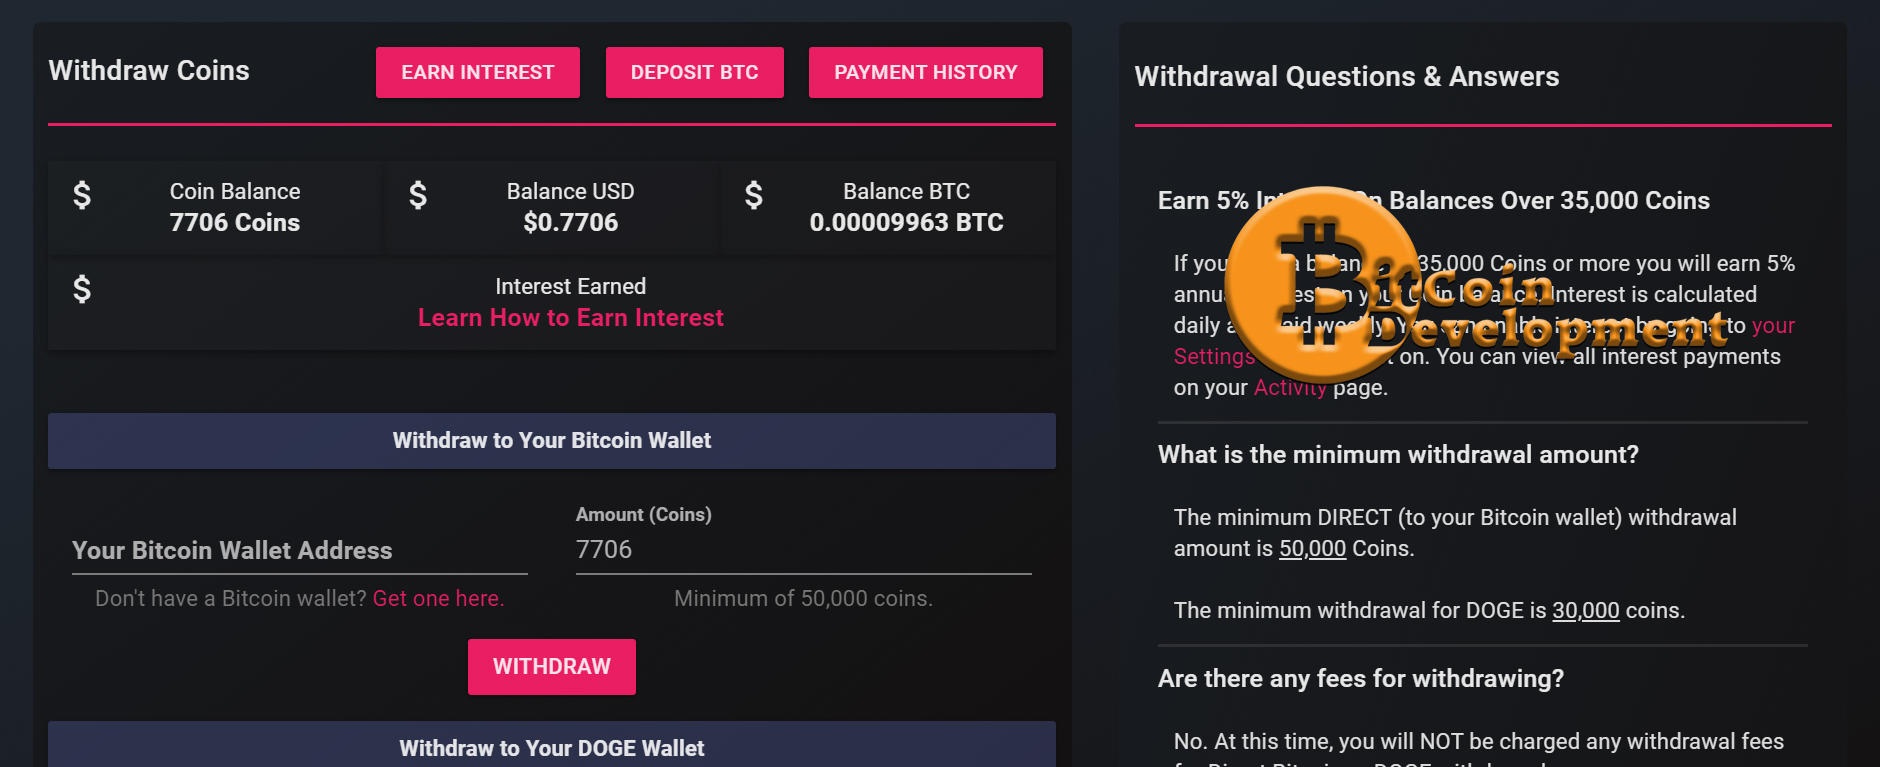 Cointiply Withdraw